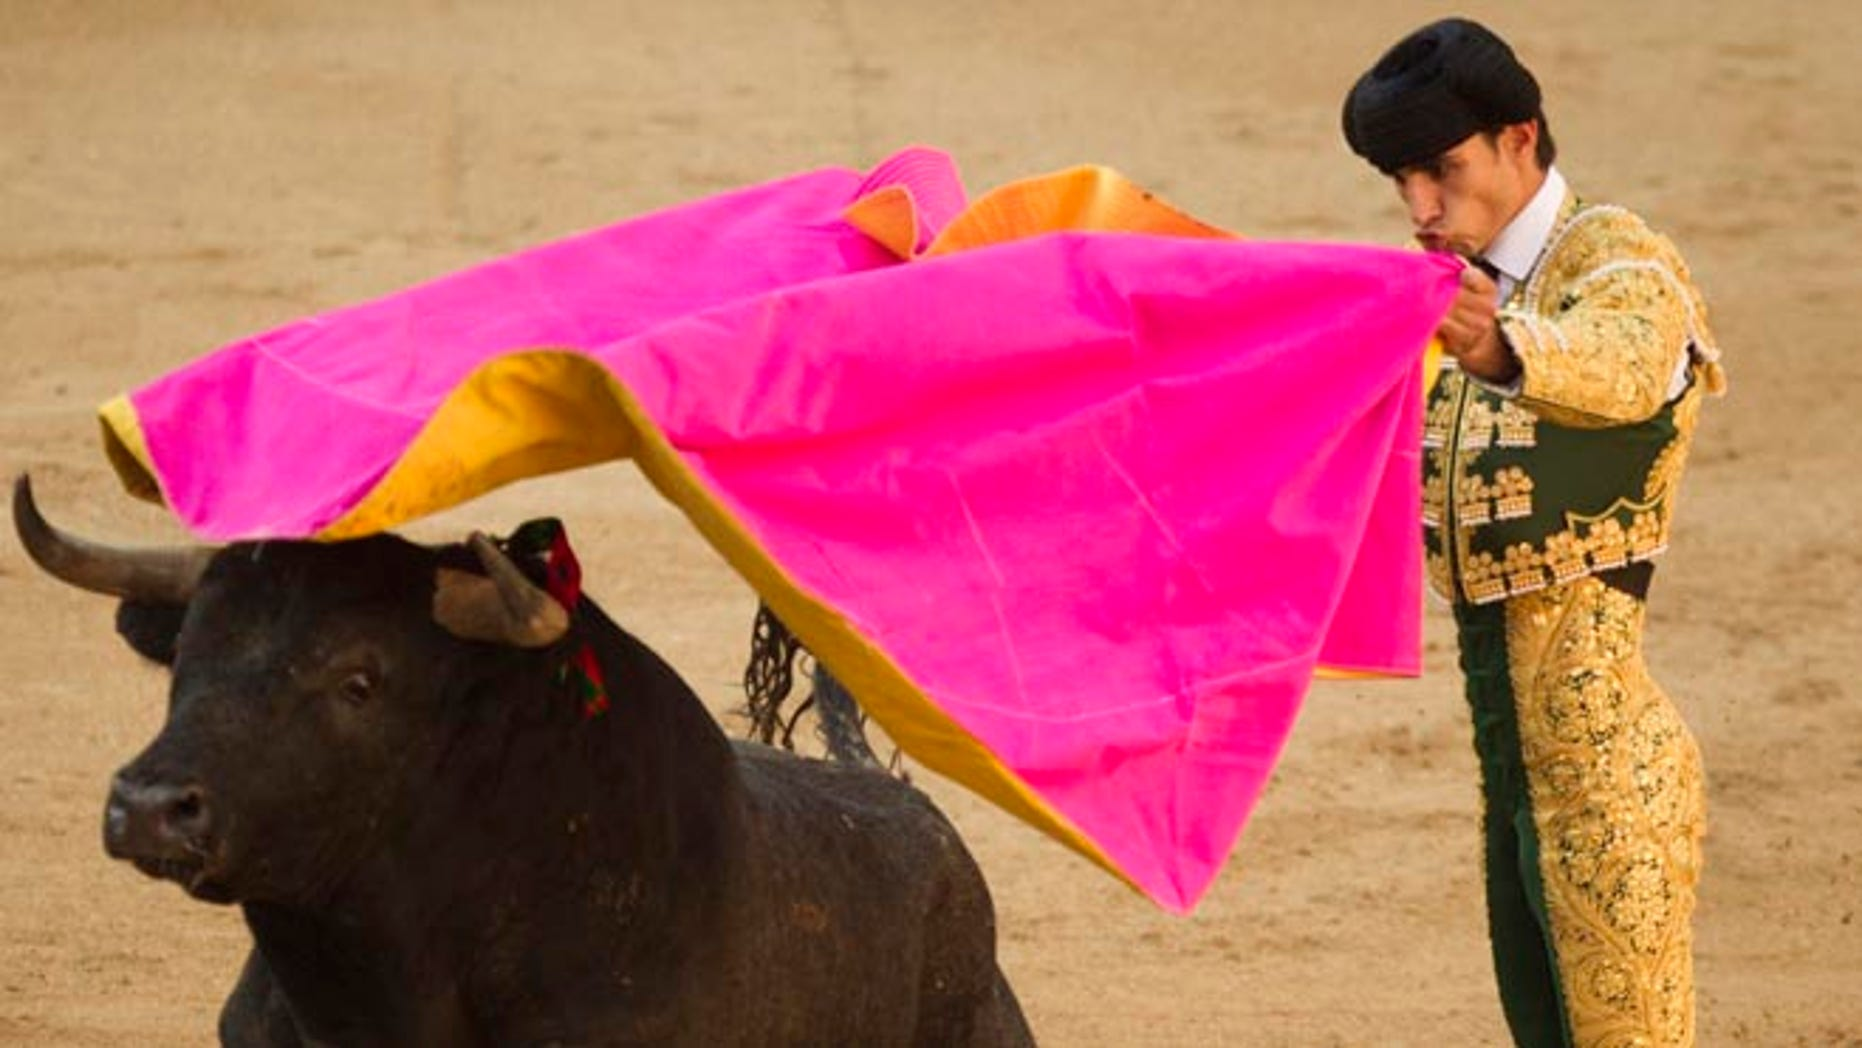 FILE - In this May 16, 2011 file photo, Spanish bullfighter Victor Barrio performs during a bullfight of the San Isidro's fair at the Las Ventas Bullring in Madrid.  The matador has been fatally gored in Spain during a bullfight in an eastern town ââ¬â the first professional bullfighter to be killed in the ring in more than three decades.  The 29-year-old Barrio was pronounced dead late Saturday, July 9, 2016,  by a surgeon at the Teruel bullring. (AP Photo/Daniel Ochoa de Olza, File)